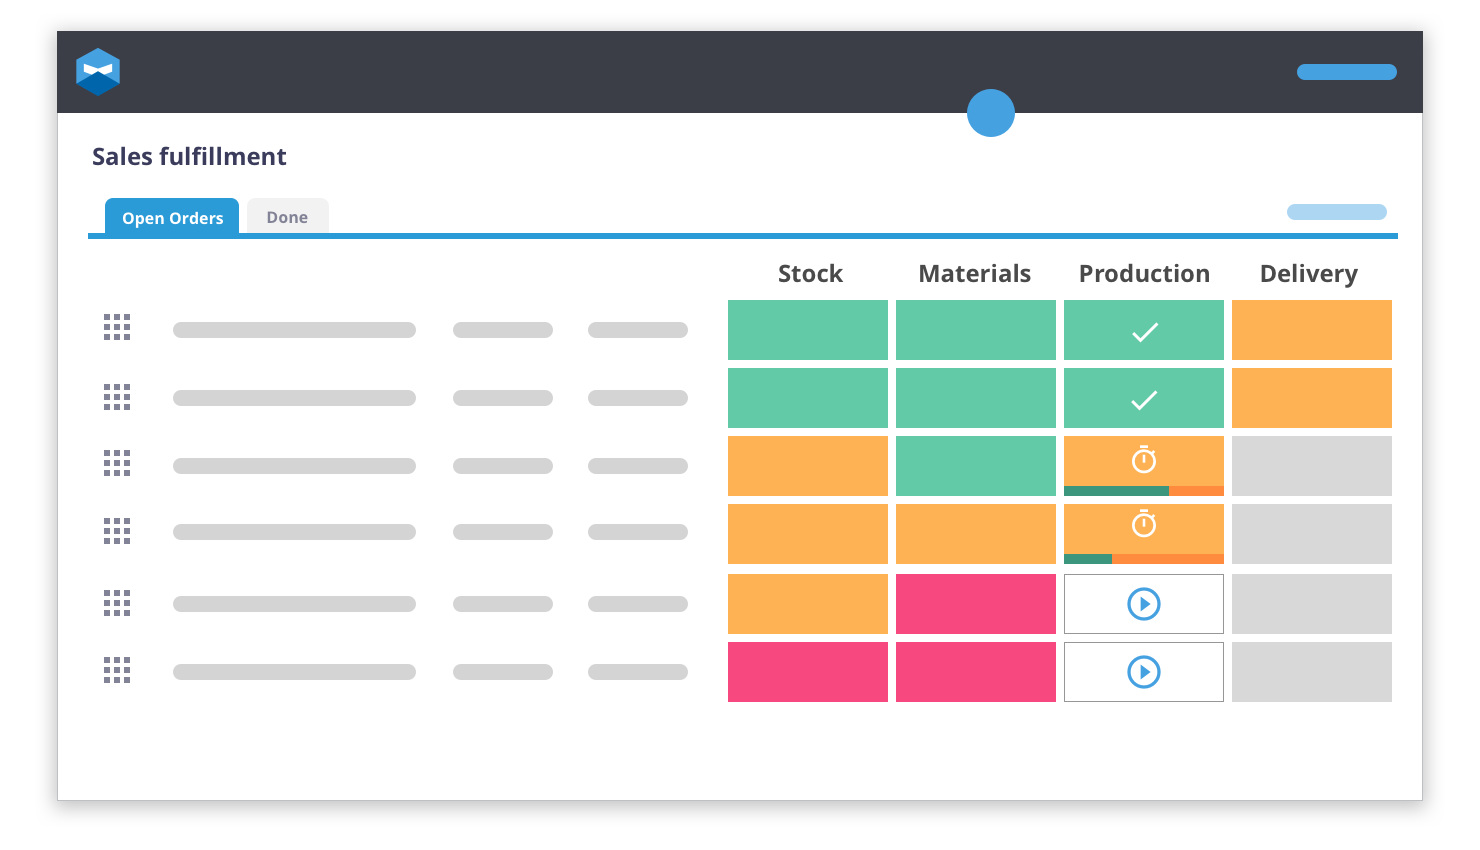 Katana is an easy to set up software which unifies your order fulfillment process and lets you manage your product-making business from a visual, color-coded dashboard. You get an overview of your entire business so that you can focus on growing your DTC brand instead.